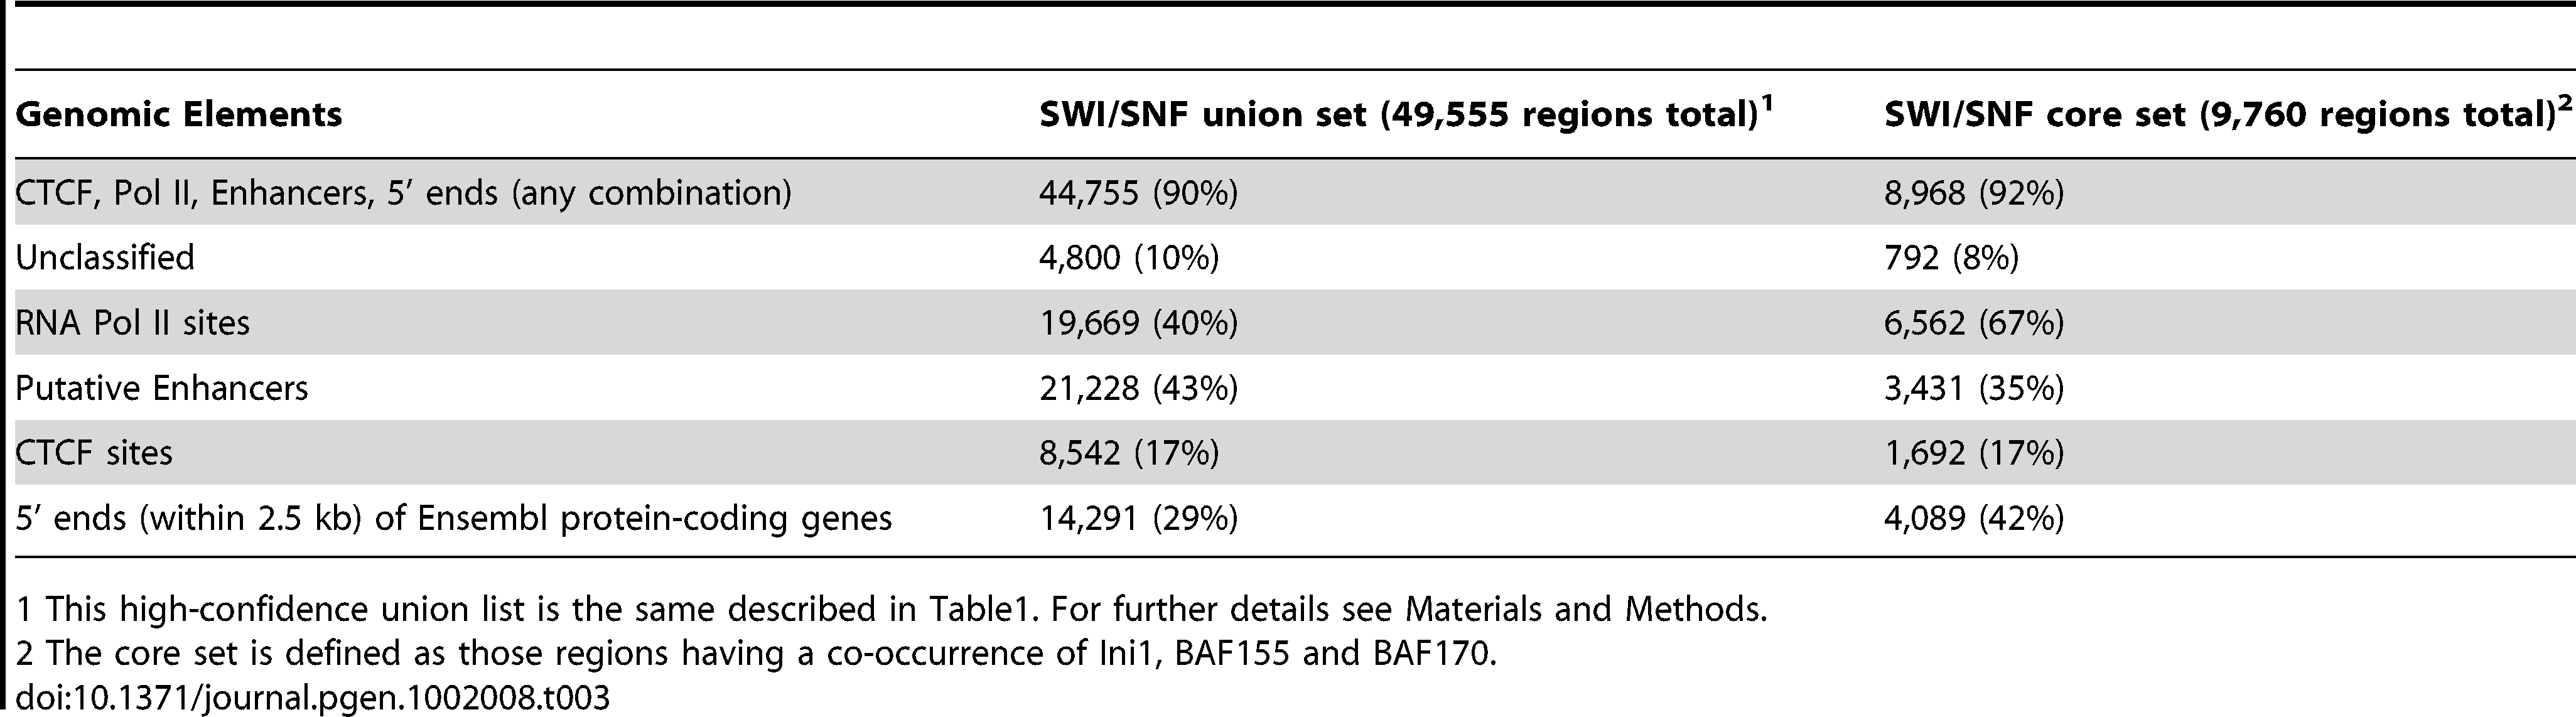 Genomic elements found in SWI/SNF target regions.